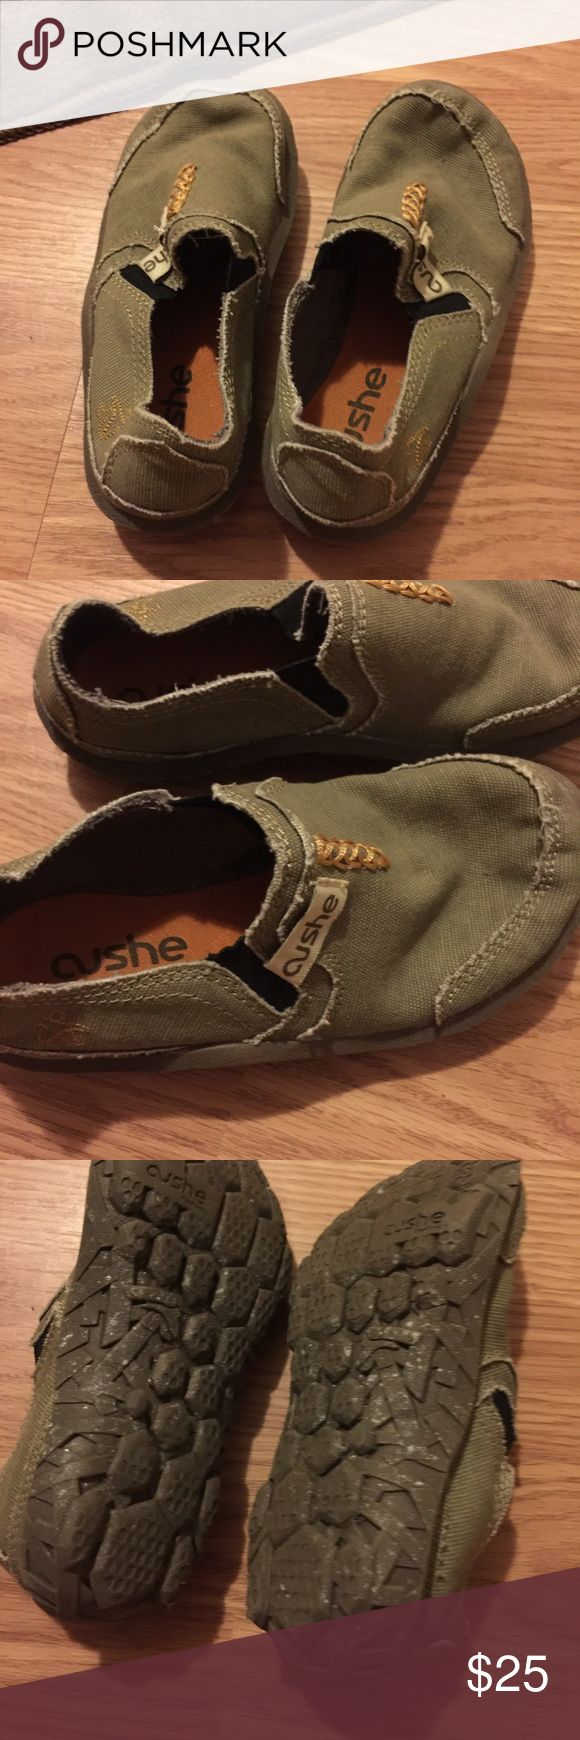 Little boys Cushe Shoes Cushe shoes size 11/12 only worn once. Paid $50, asking $25. Cushe Shoes Flats & Loafers